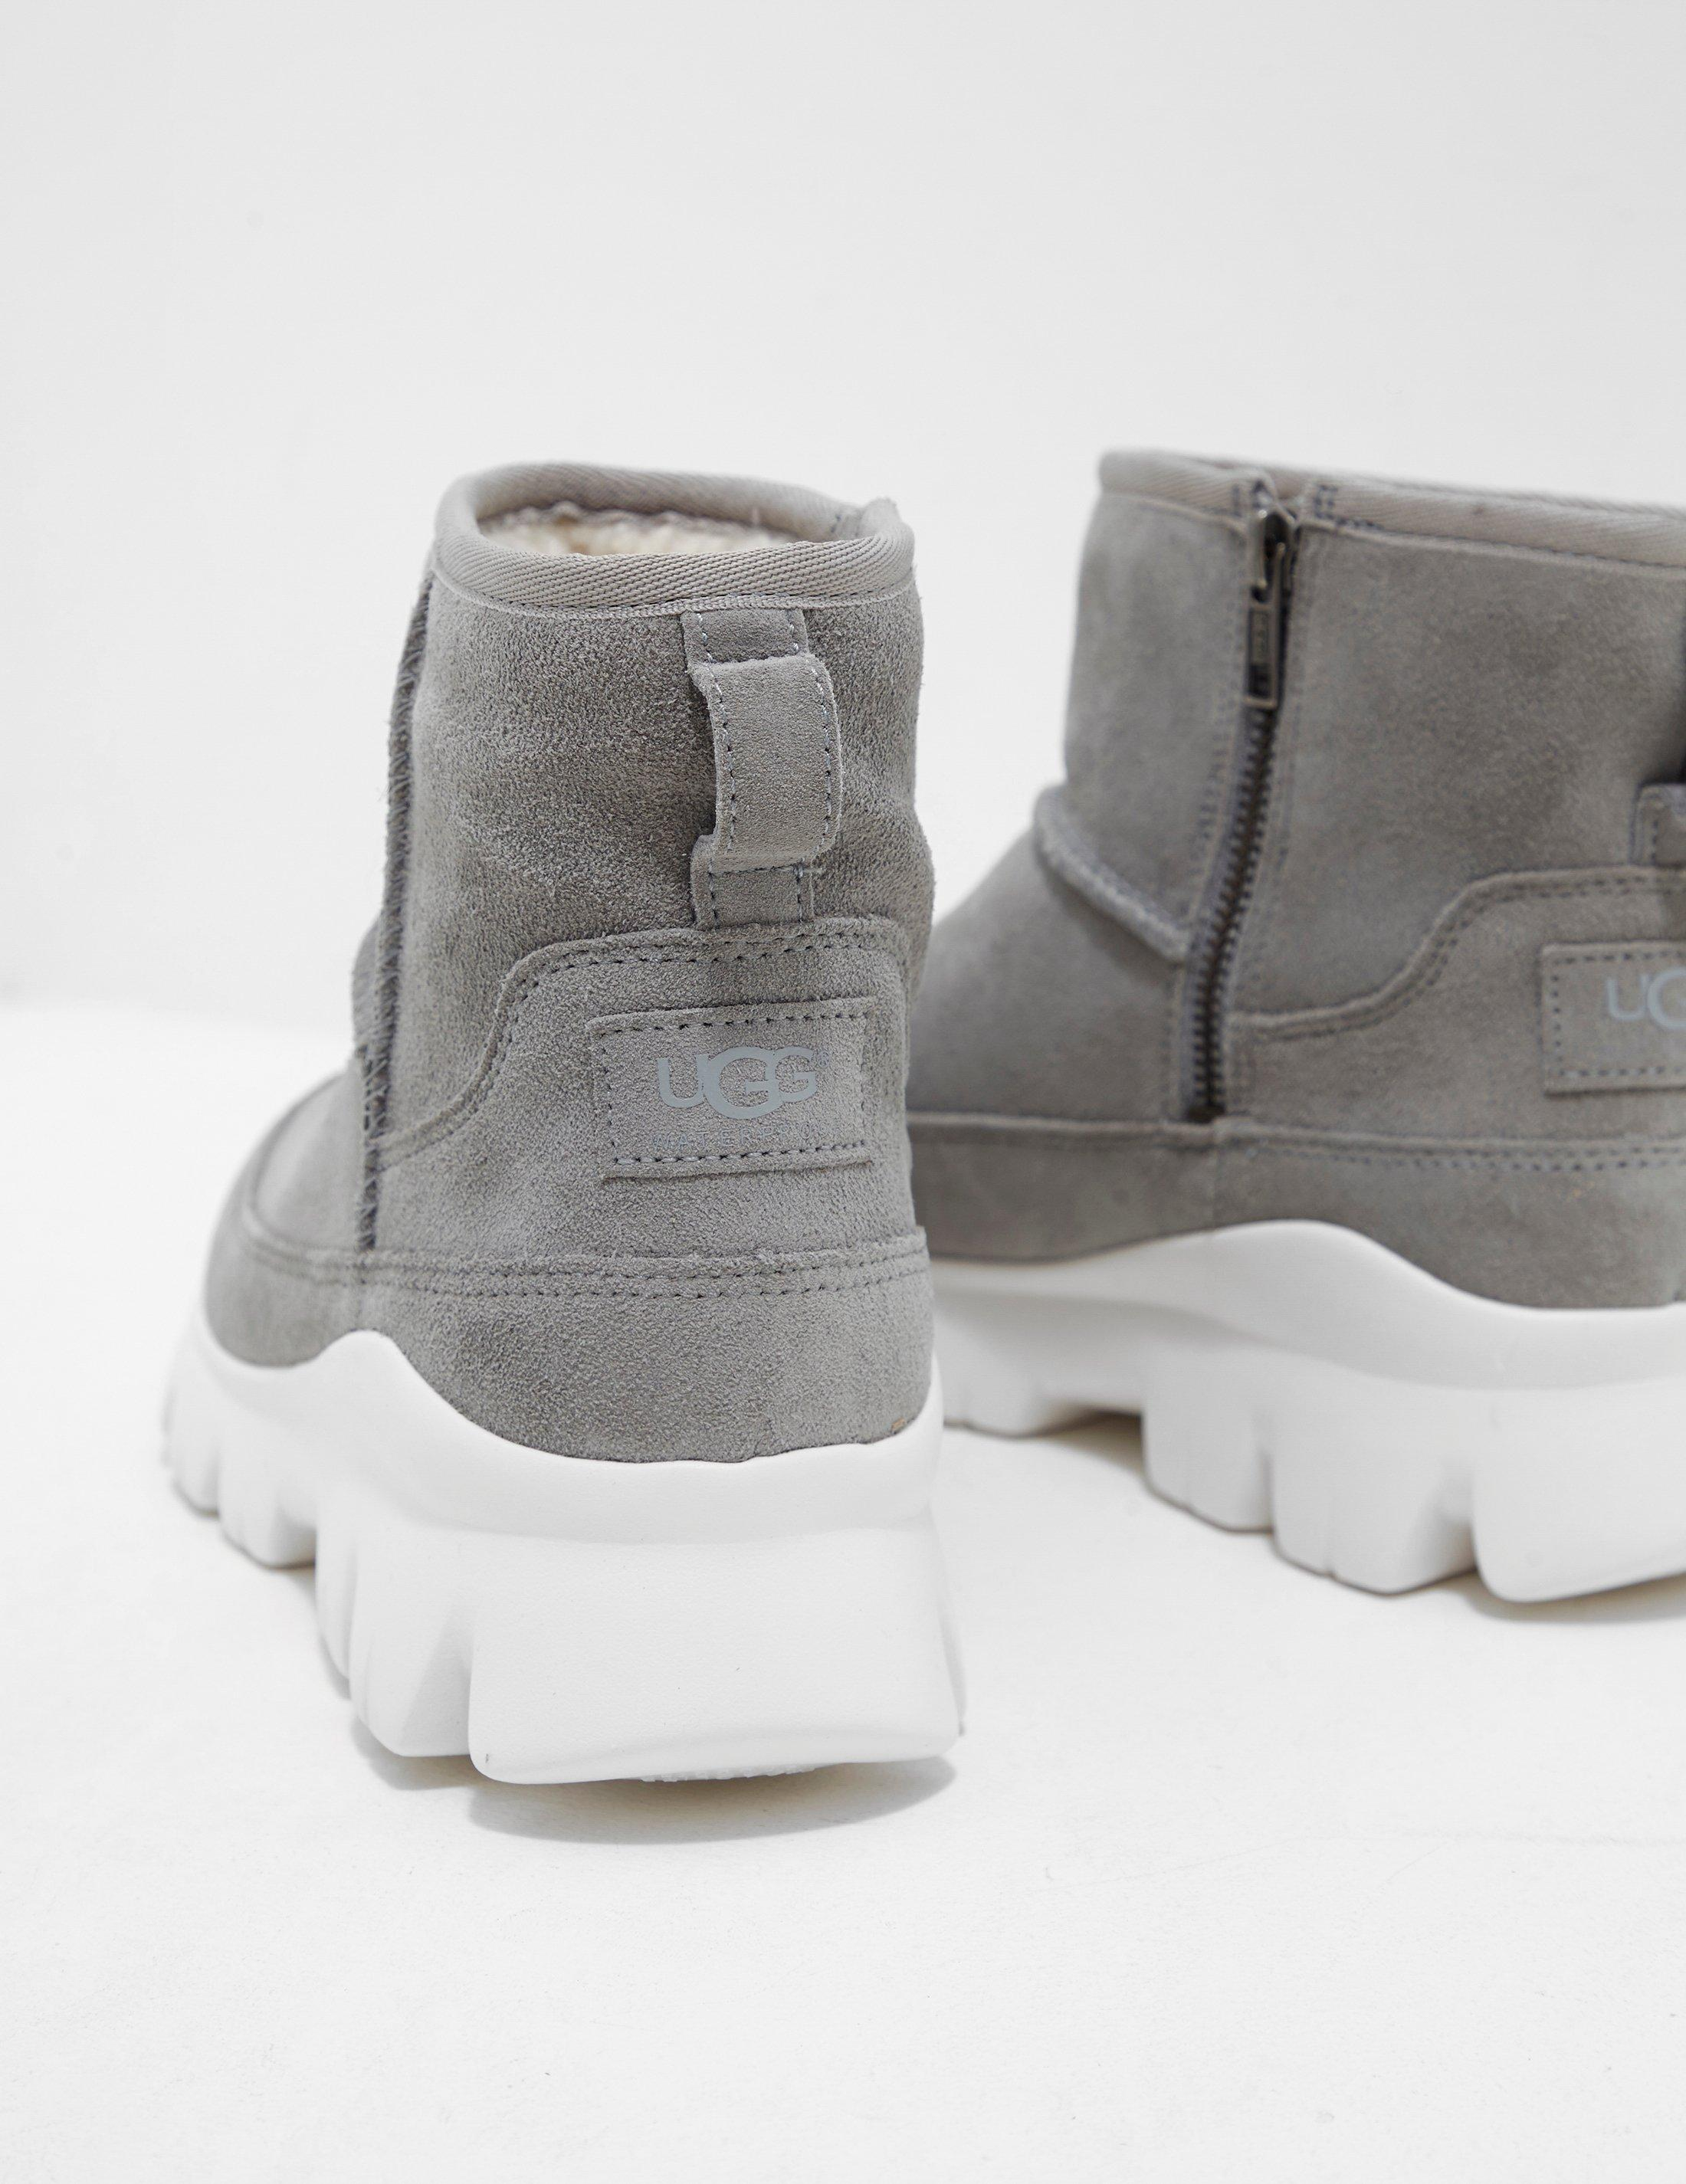 33473c62a52 Ugg - Gray Womens Sneaker Boot - Online Exclusive Grey - Lyst